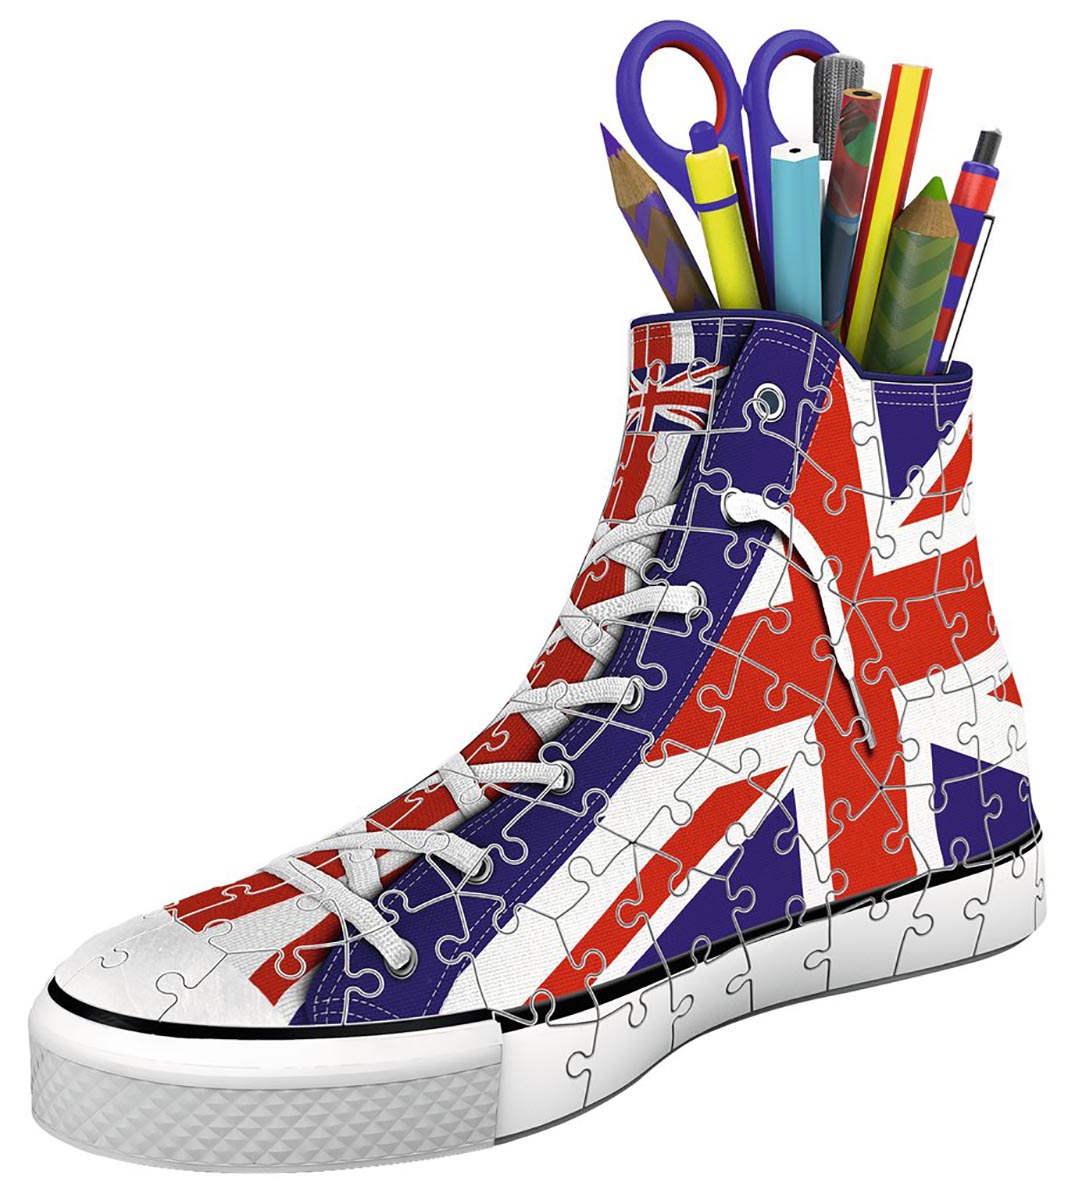 Sneaker: Union Jack Everyday Objects Jigsaw Puzzle